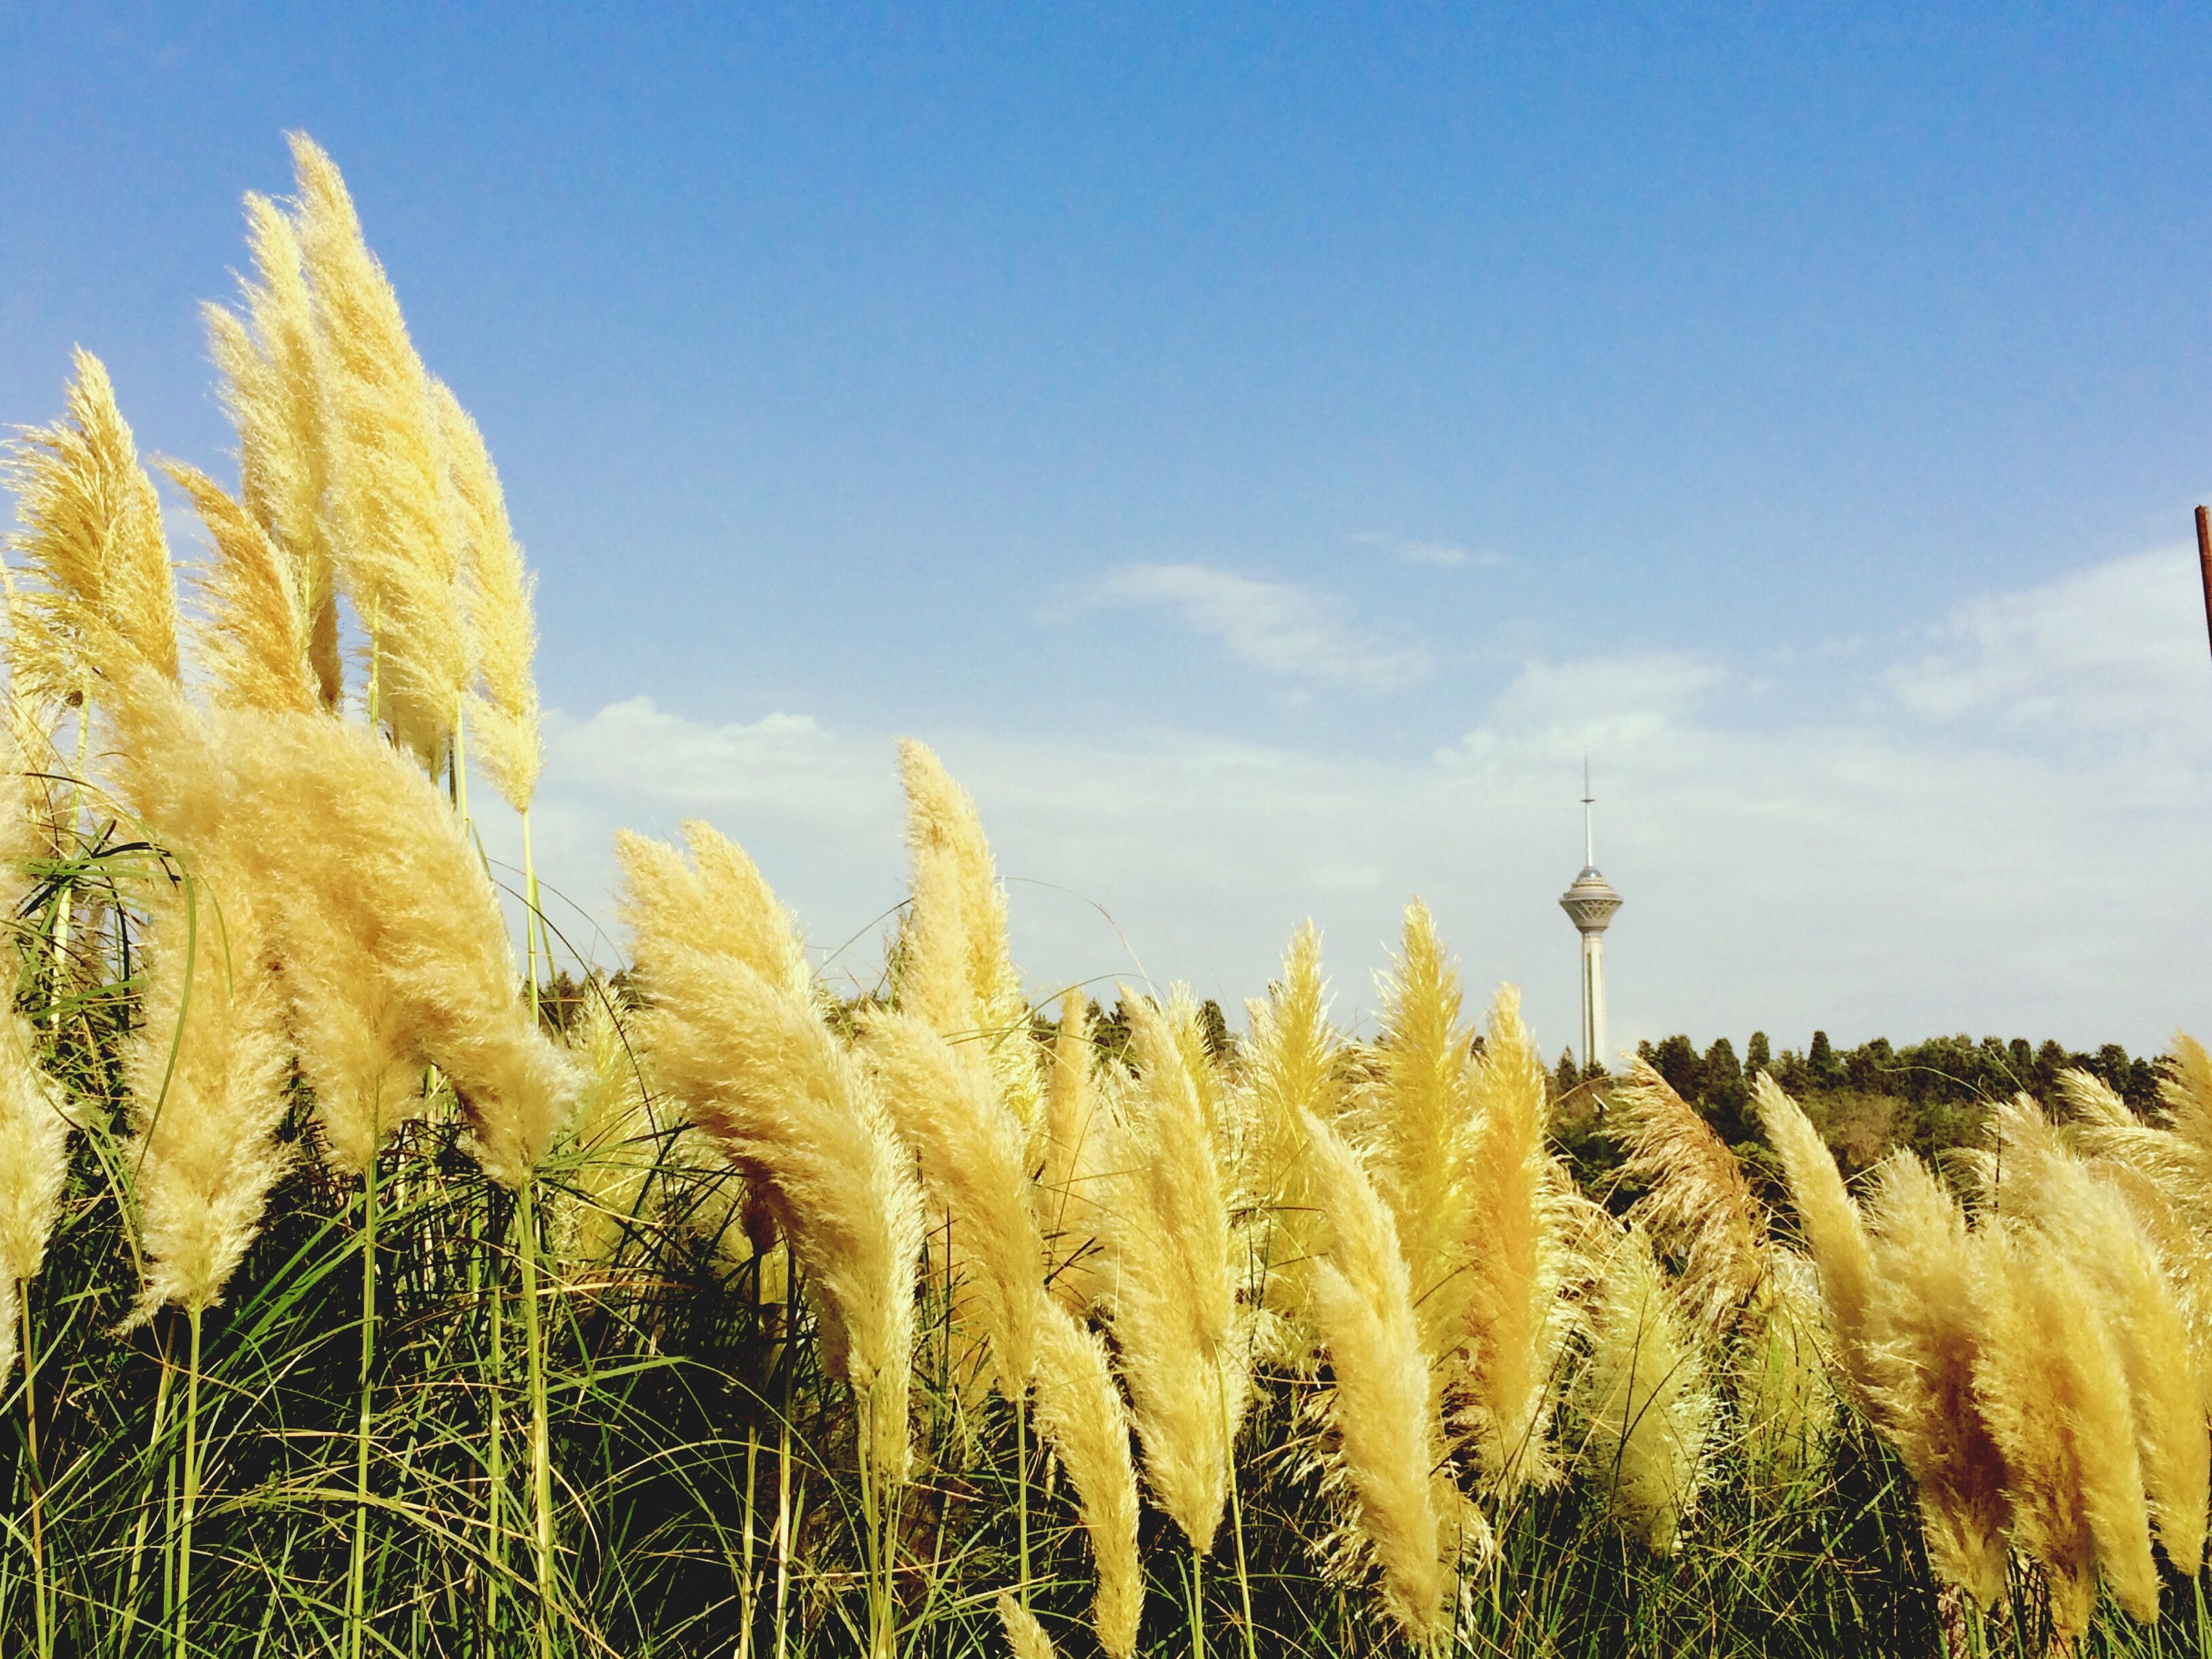 blue, sky, growth, beauty in nature, field, nature, landscape, tranquility, tranquil scene, clear sky, scenics, plant, rural scene, yellow, built structure, copy space, day, outdoors, agriculture, sunlight